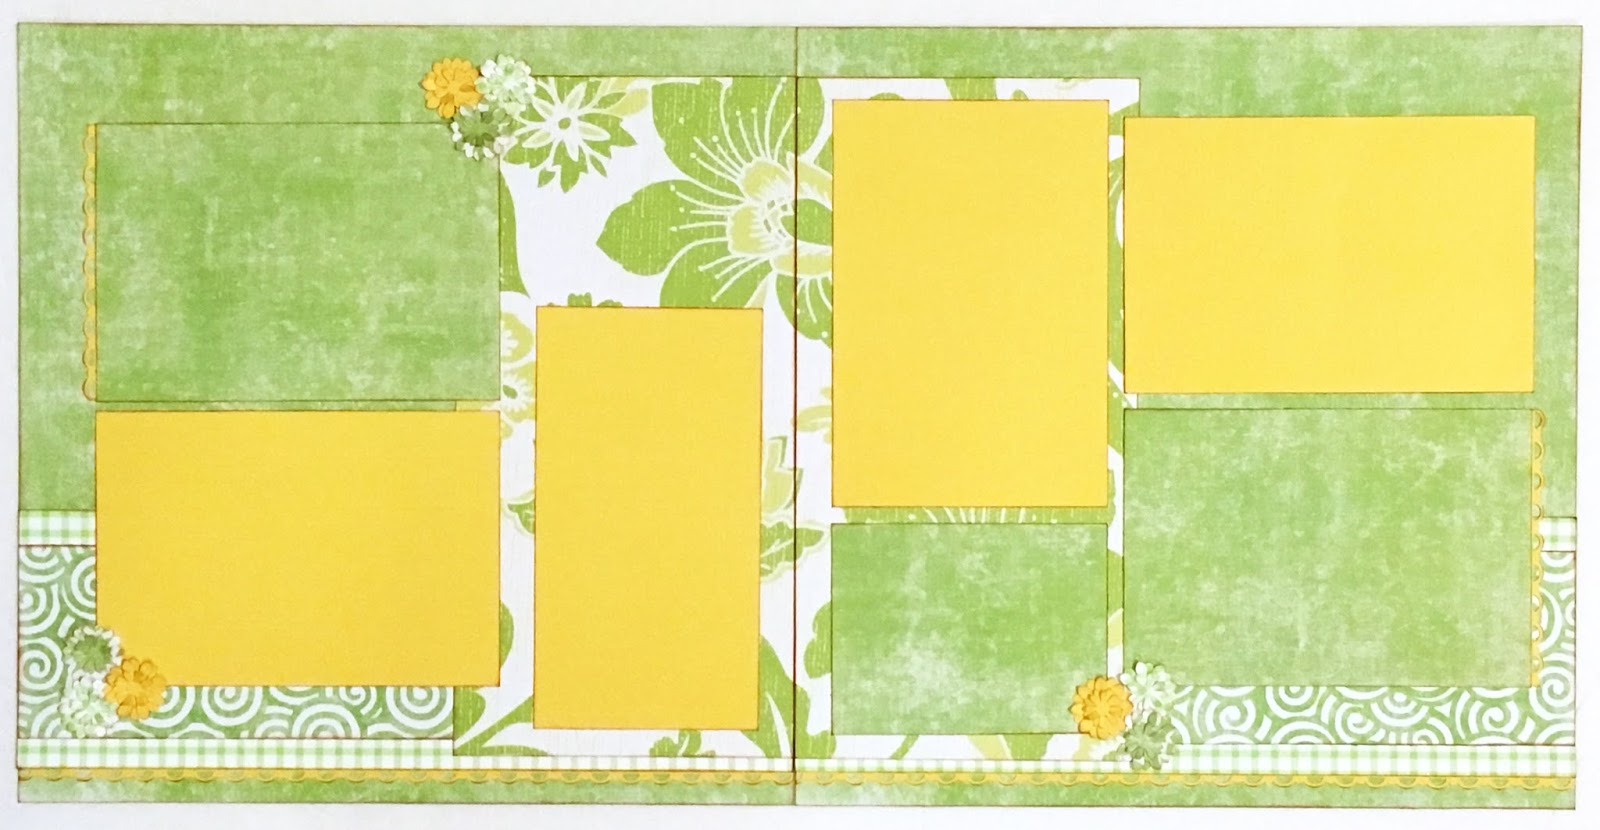 Scrapbook ideas new orleans - Scrapbook Layouts Nature Check Out The New 2 Page Layout Kit Created By Melissa Gross